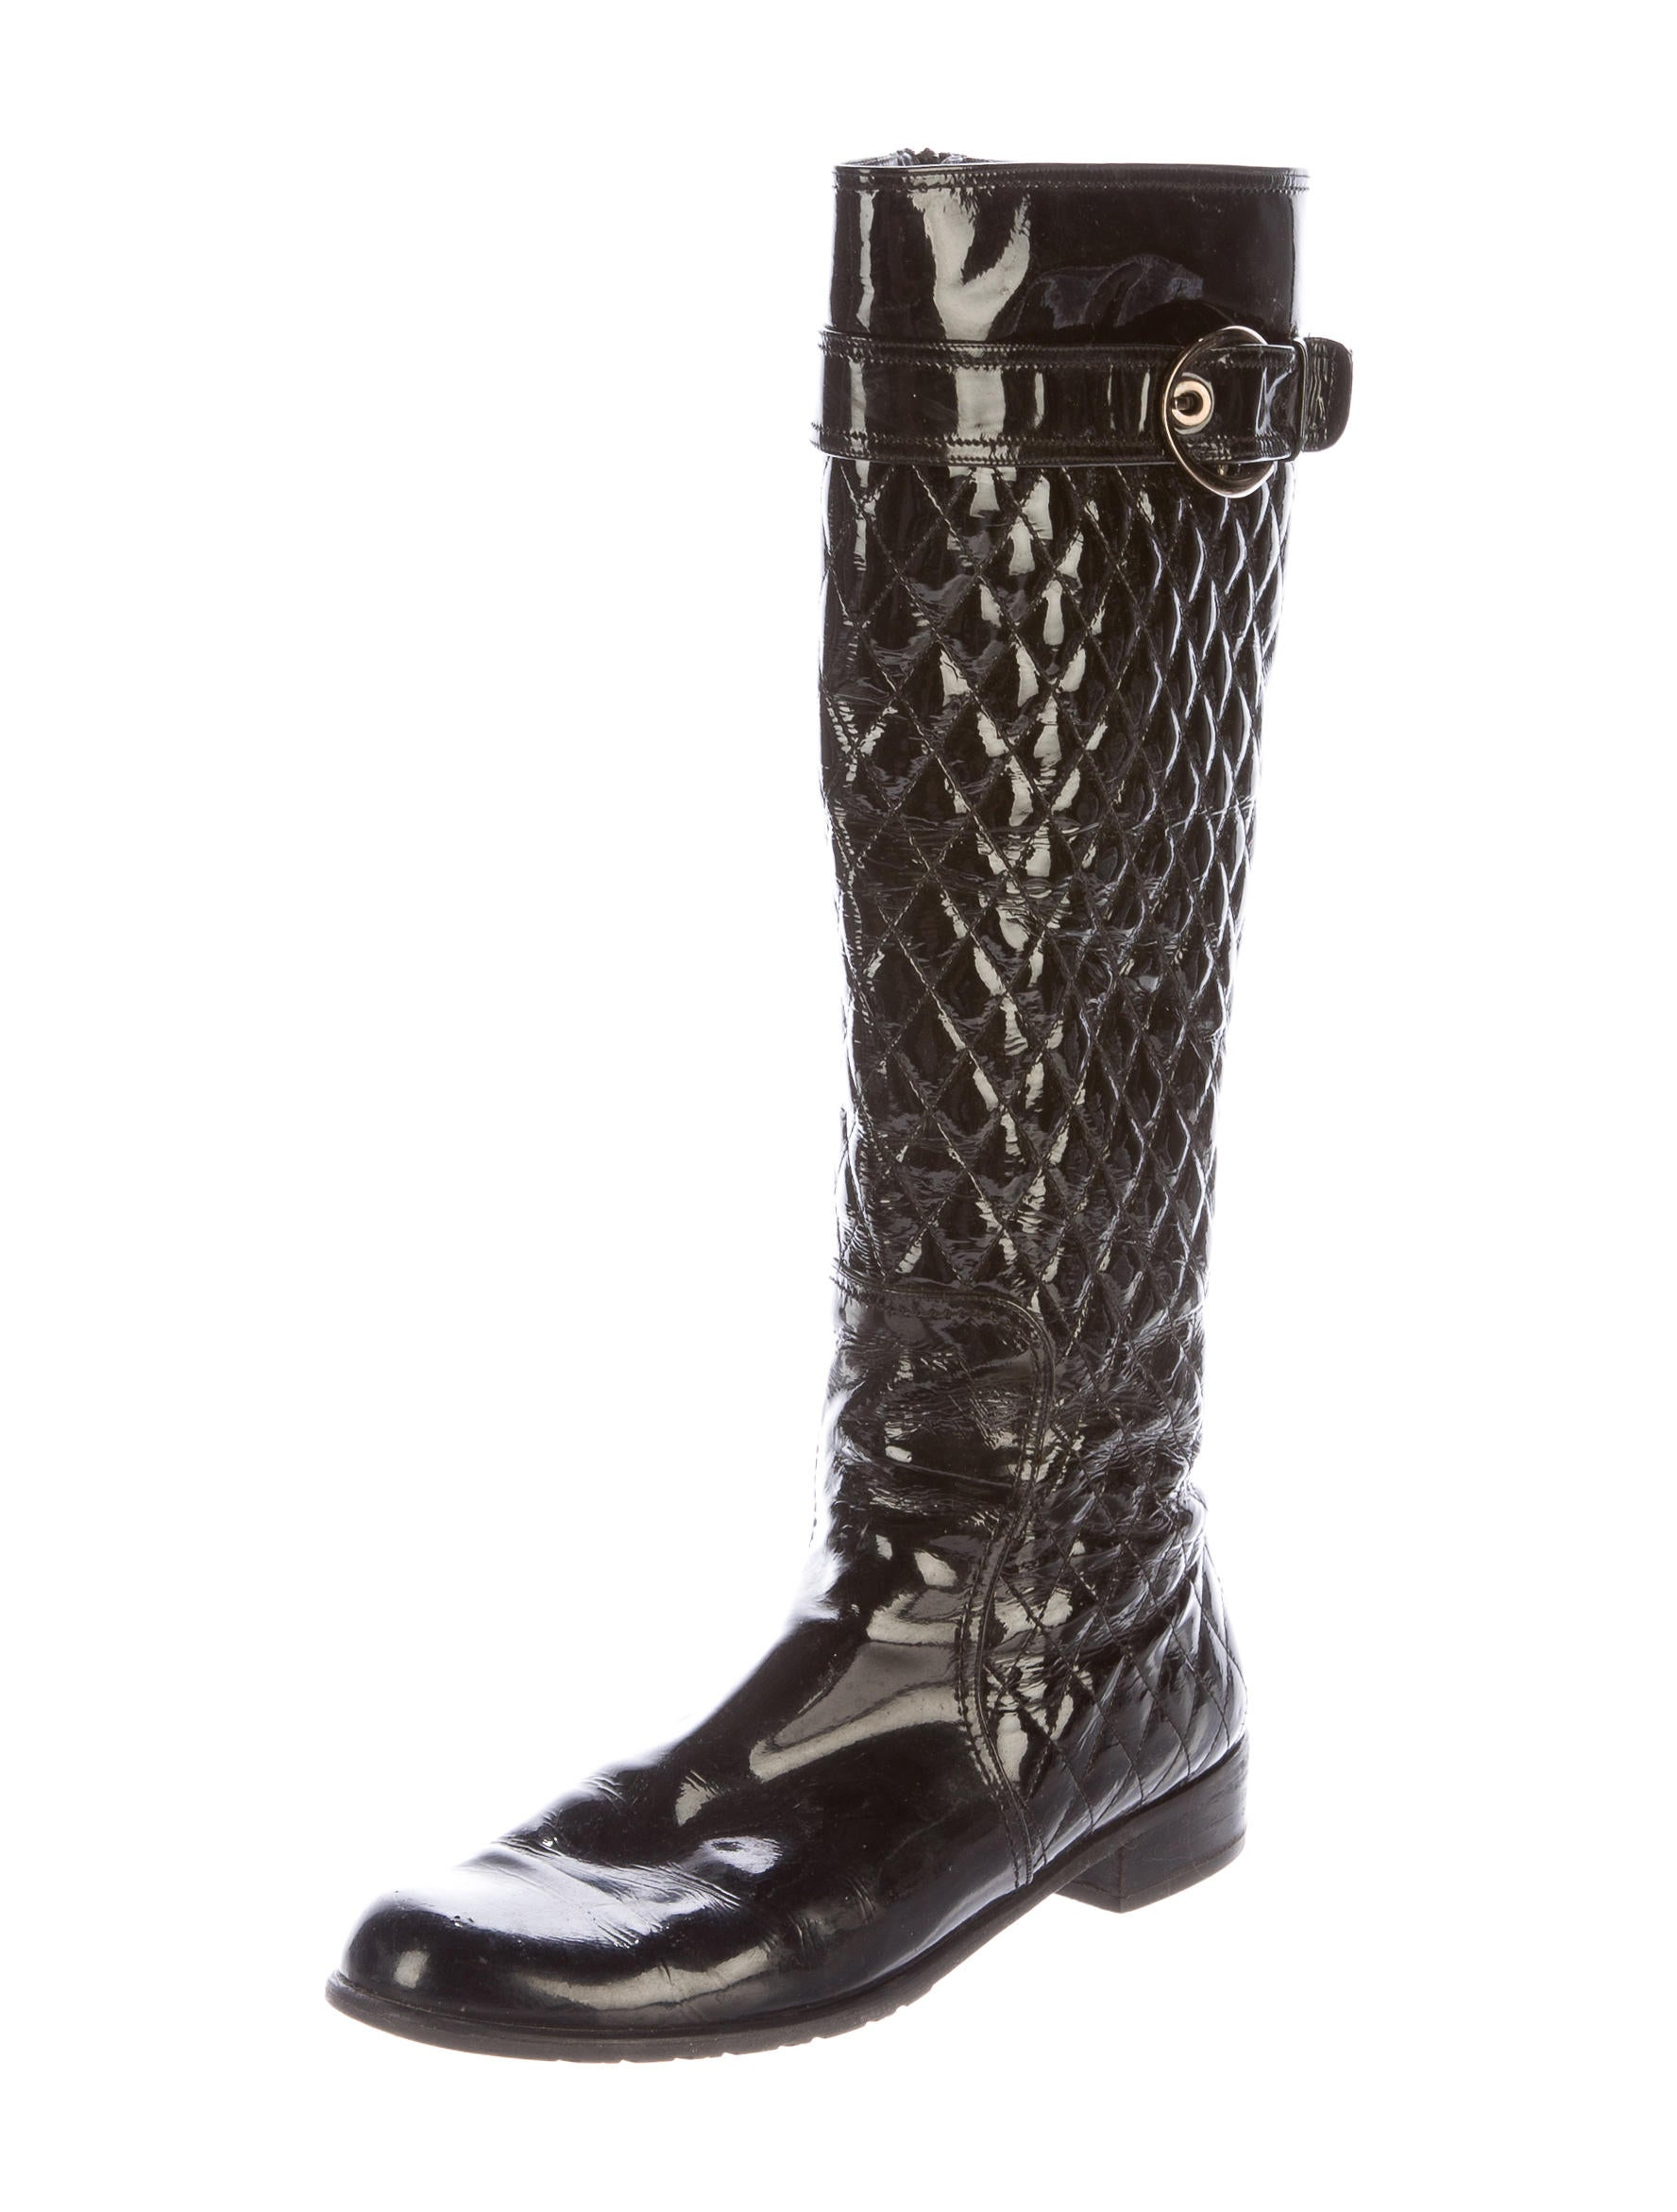 stuart weitzman quilted patent leather knee high boots